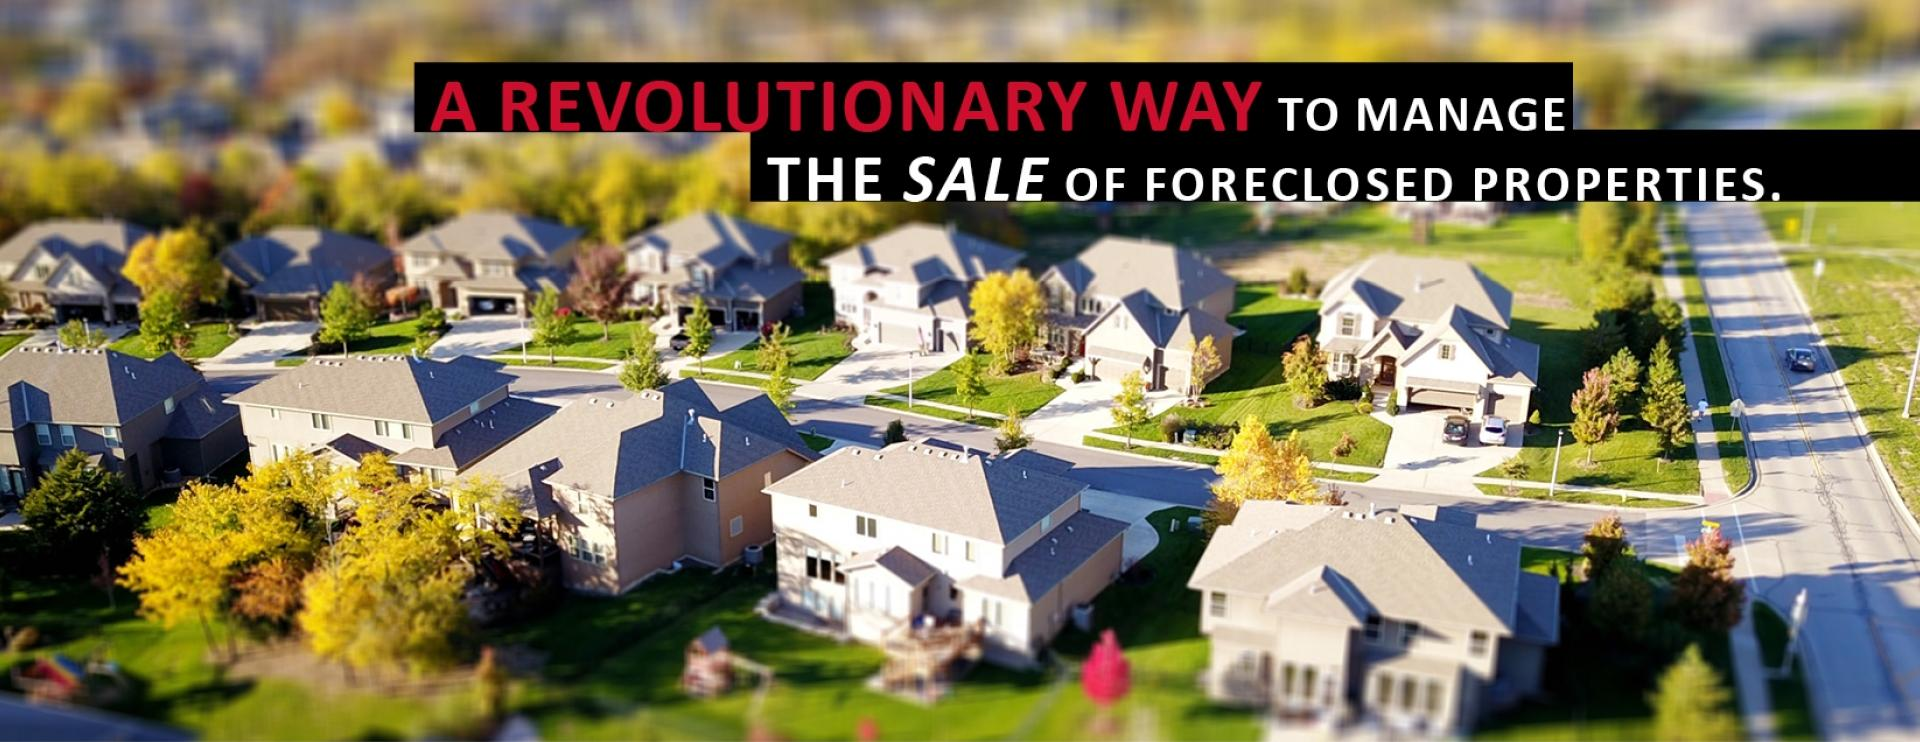 A revolutionary way to manage the sale of foreclosed properties.